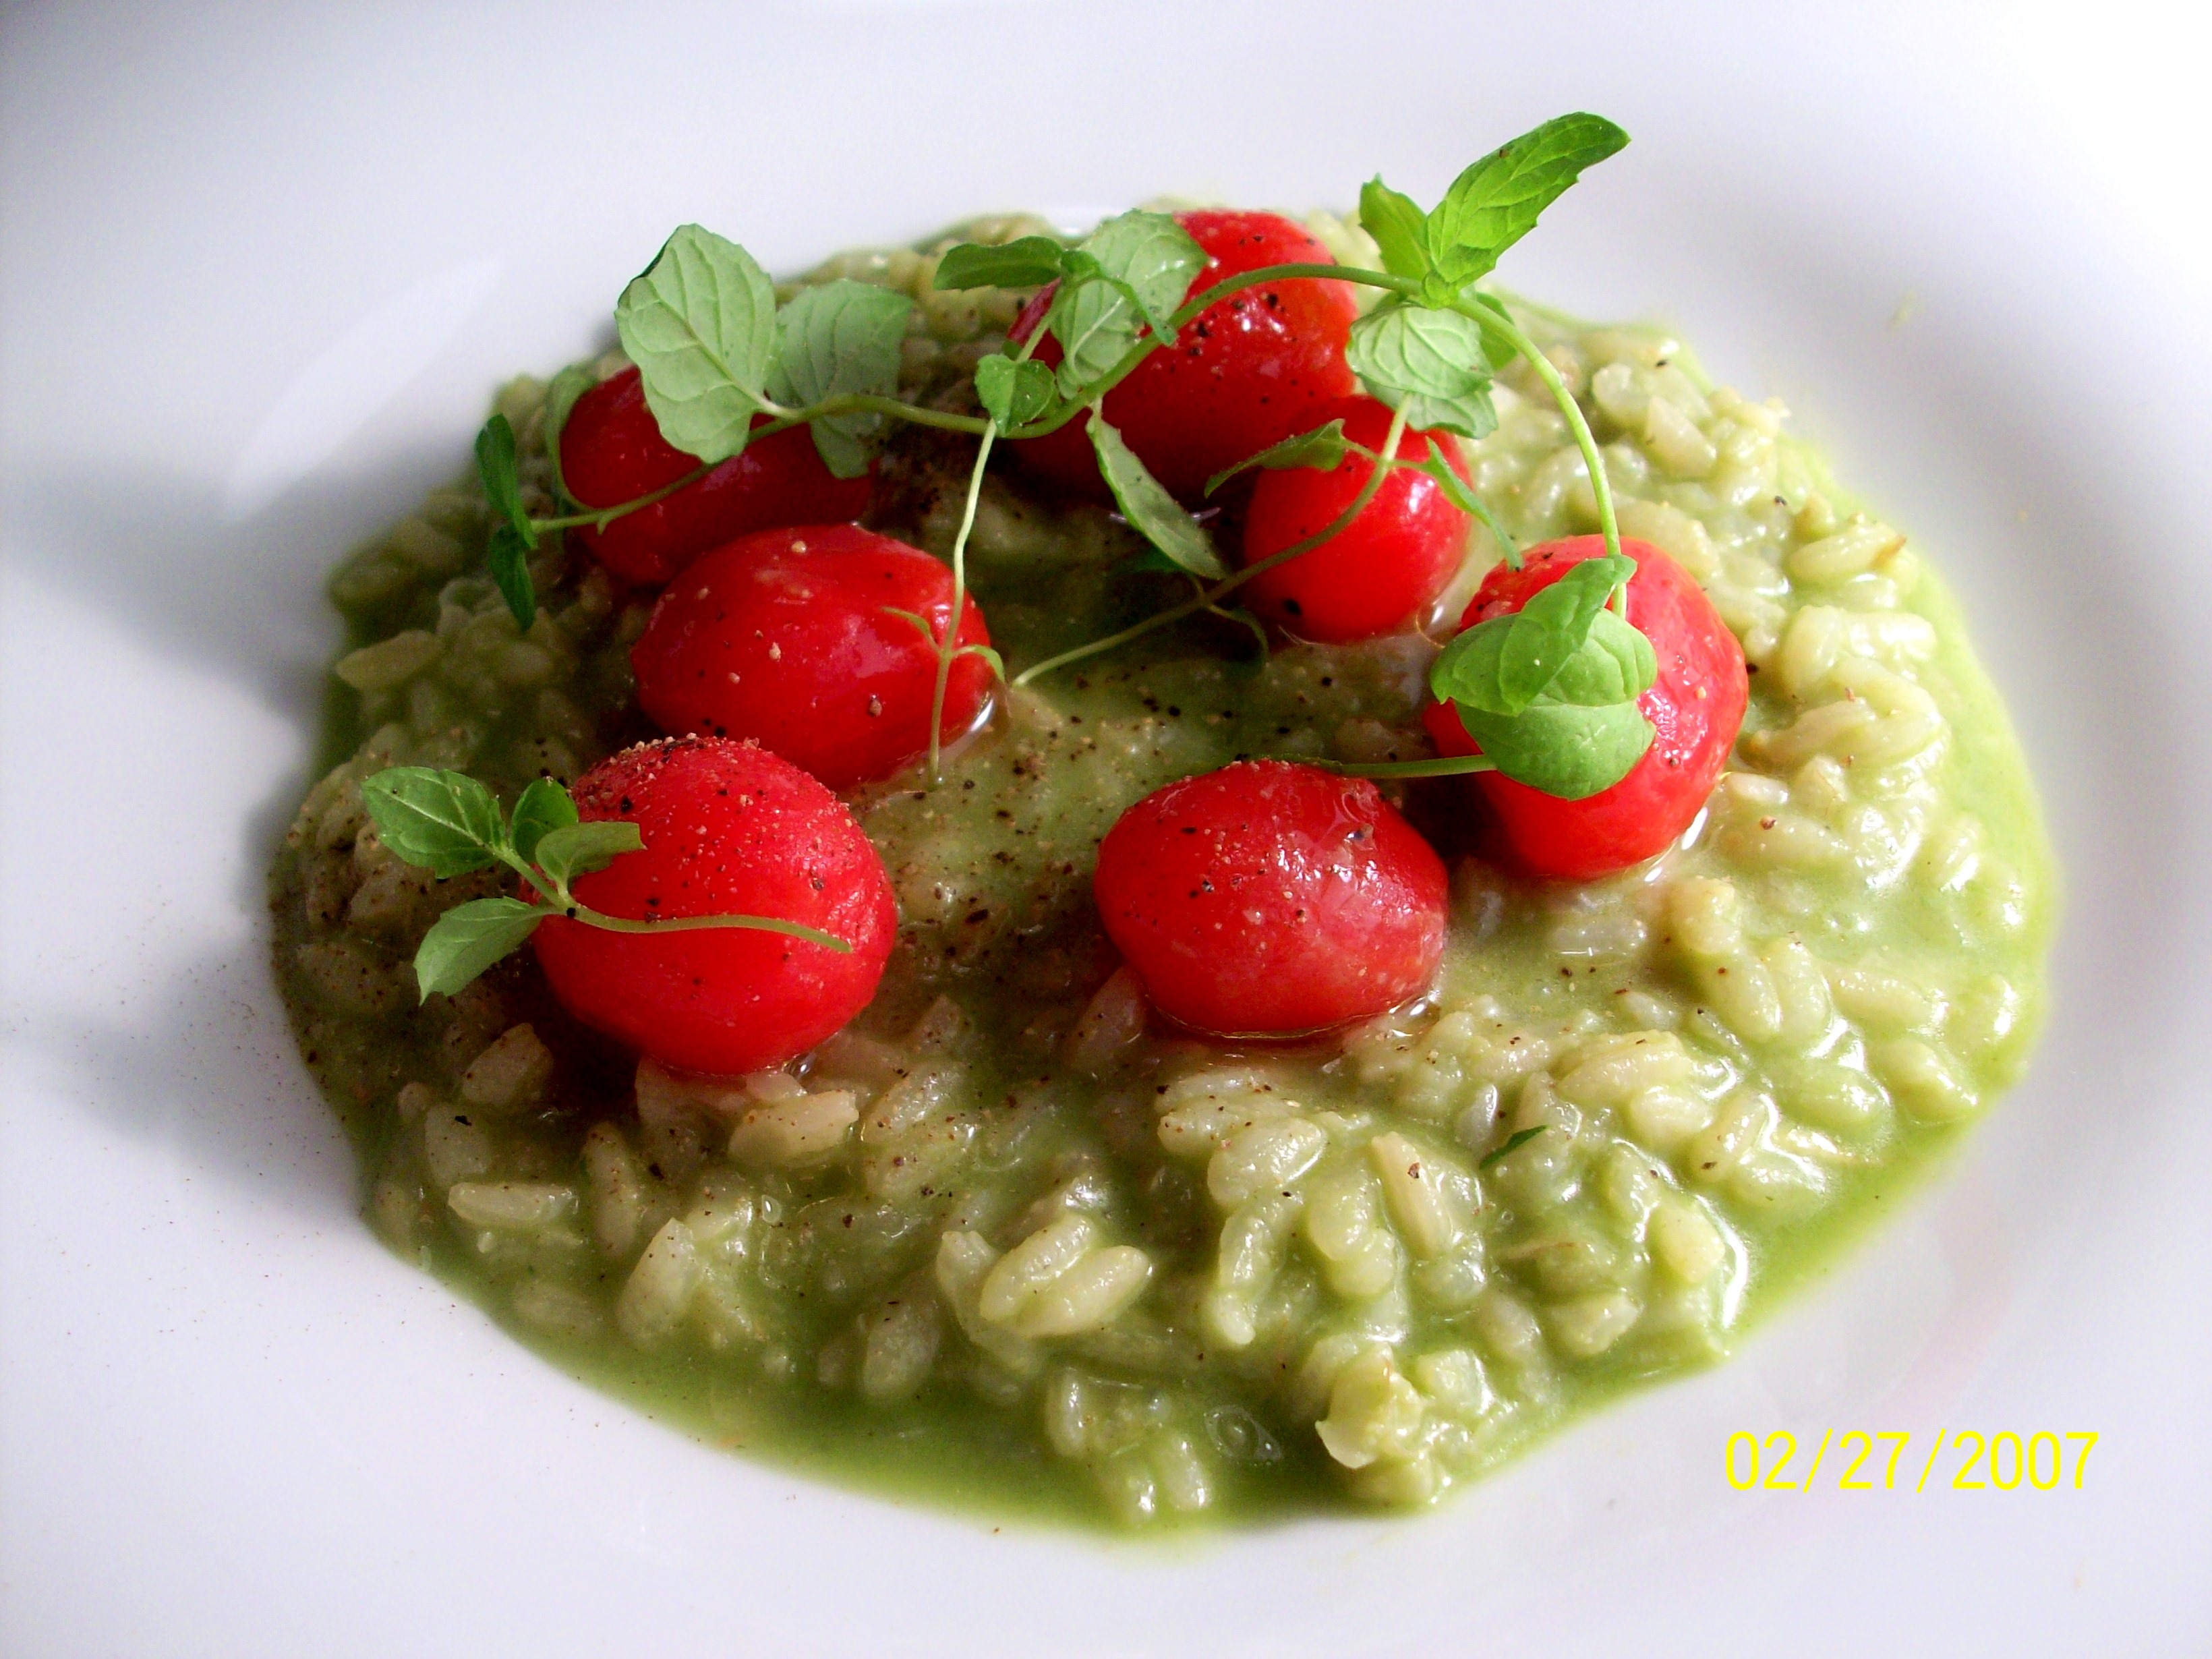 Avocado Risotto with Cherry Tomatoes and Mint